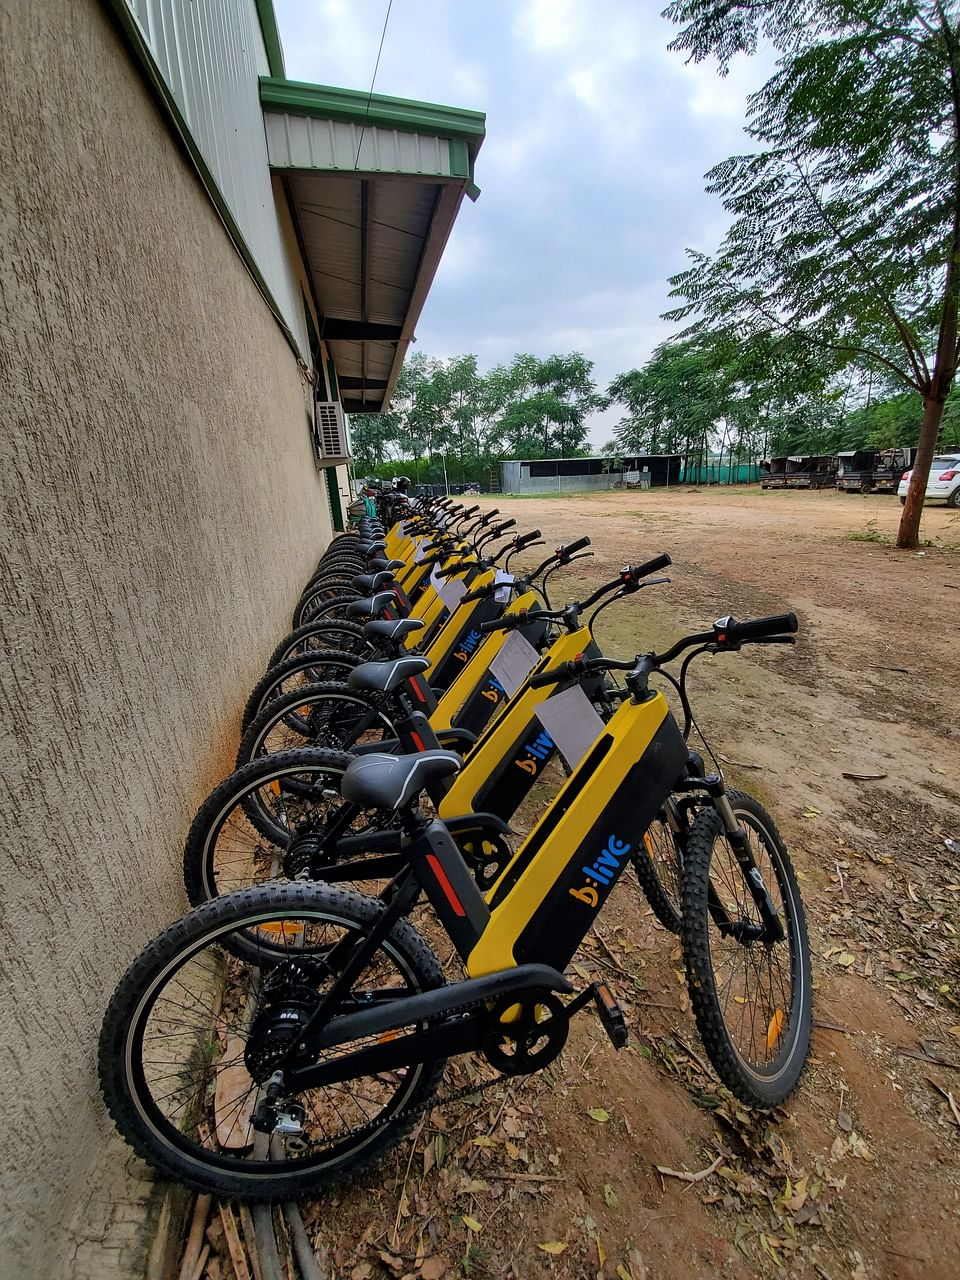 With the collaboration with BLive, it won't be long before you too might see these bikes cropping up in your city